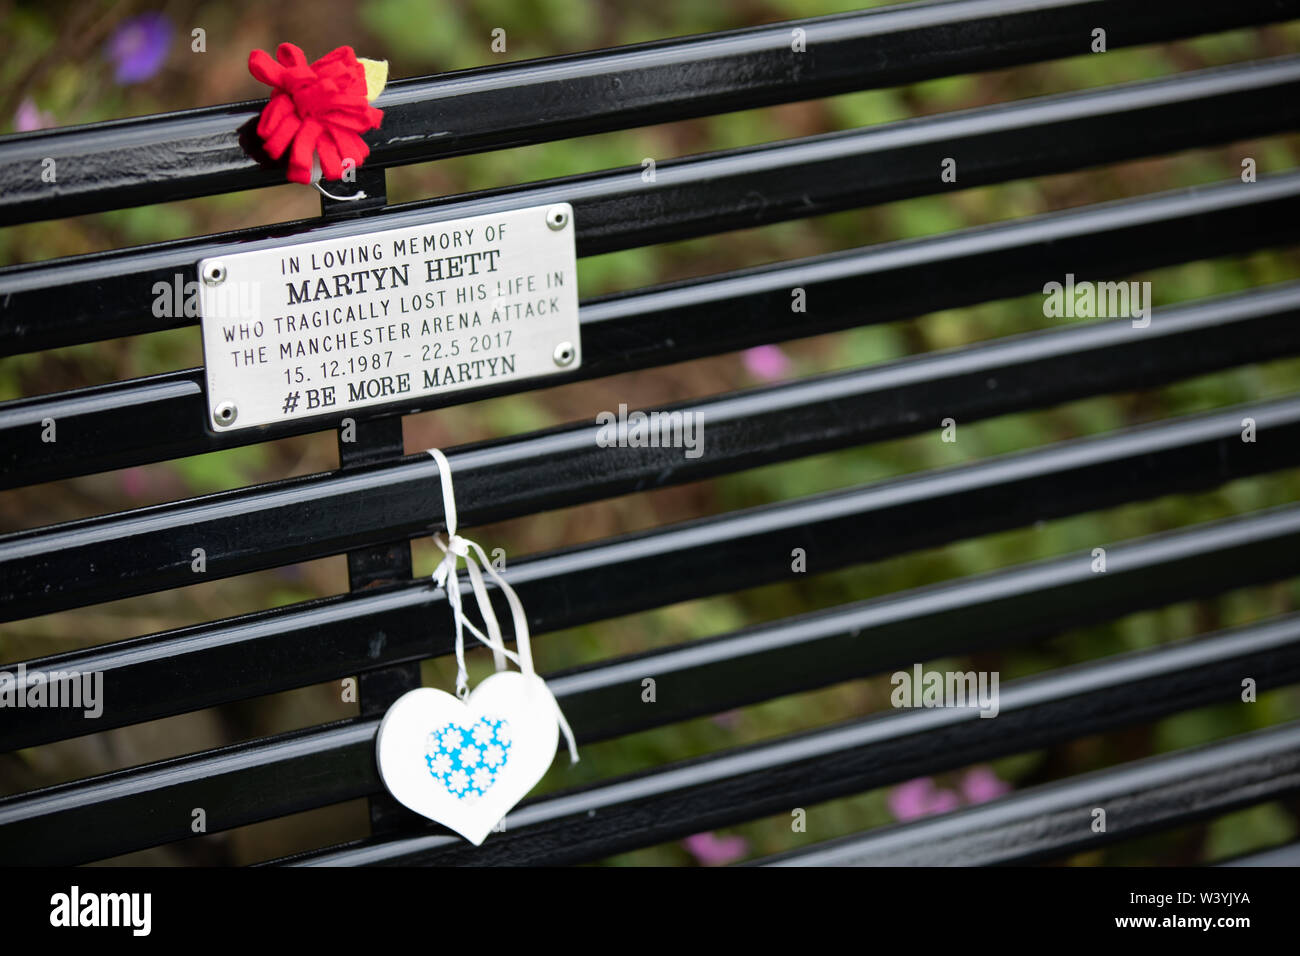 18 Jul 2019, Stockport, United Kingdom. The memorial bench to Martyn Hett, one of the 22 people who died during an explosion at the Manchester Arena o Stock Photo